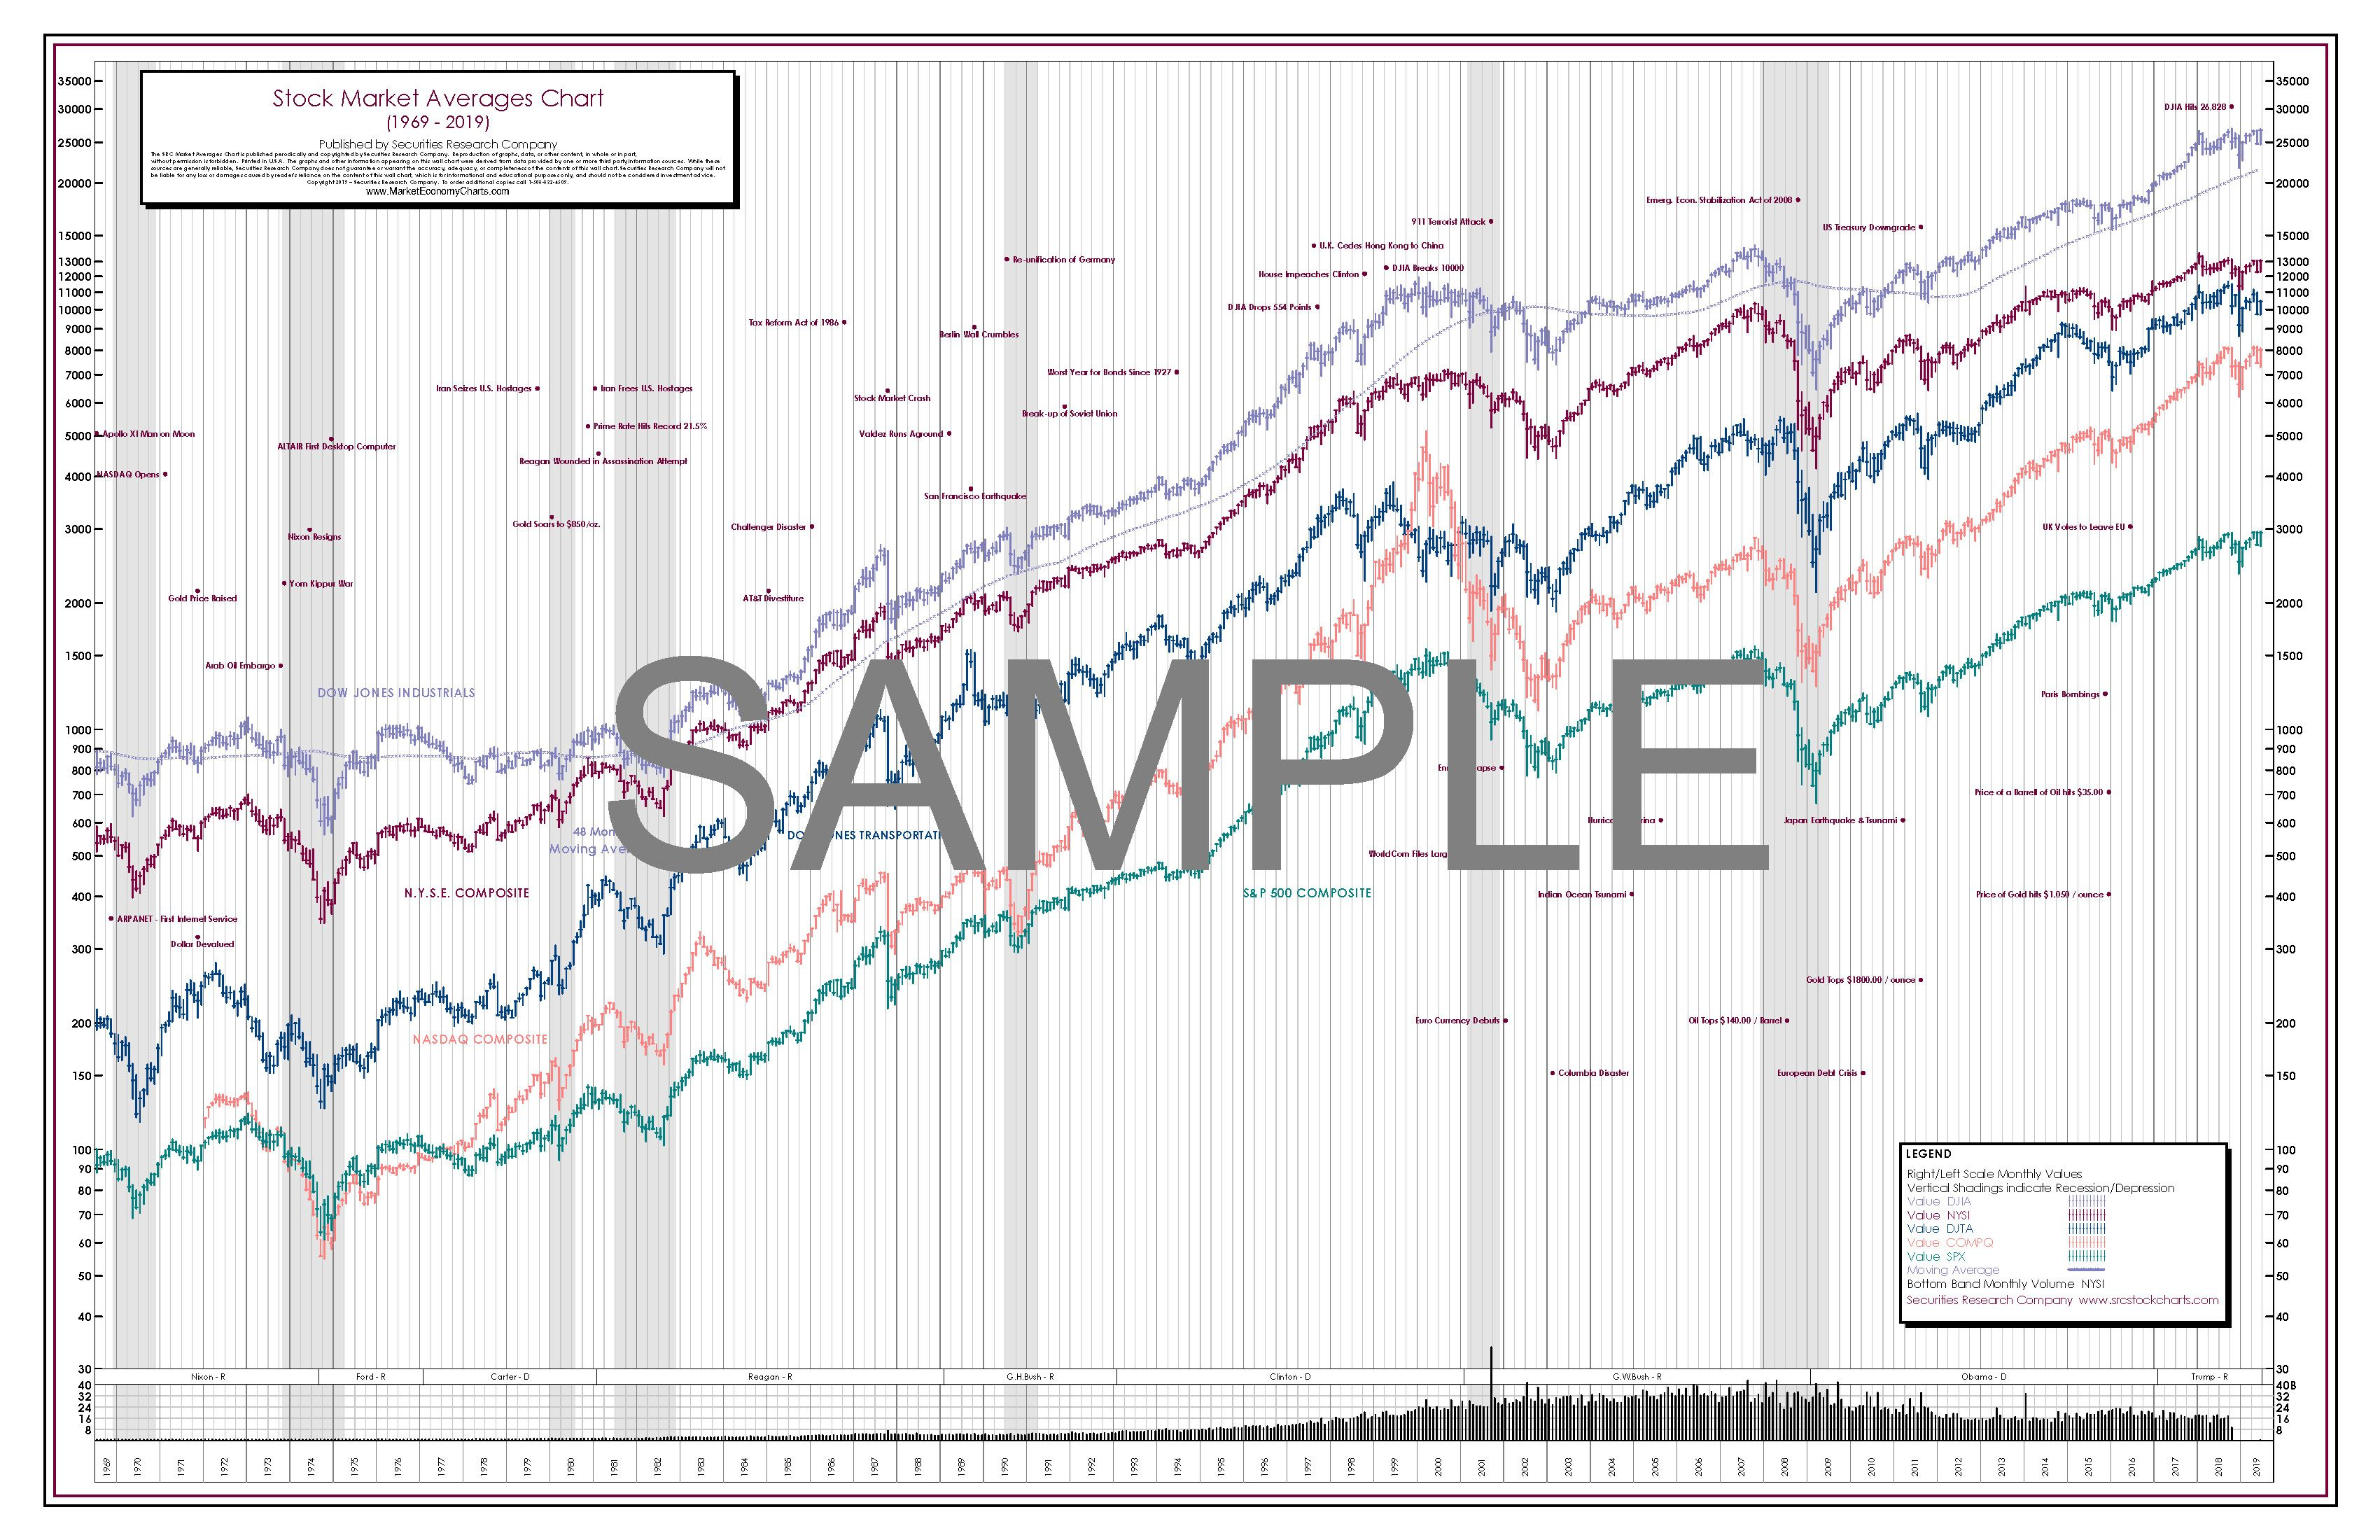 50 Year Stock Chart Poster Includes Djia Nyse Nasdaq S P 500 In 2020 Stock Charts Stock Market Stock Market Chart